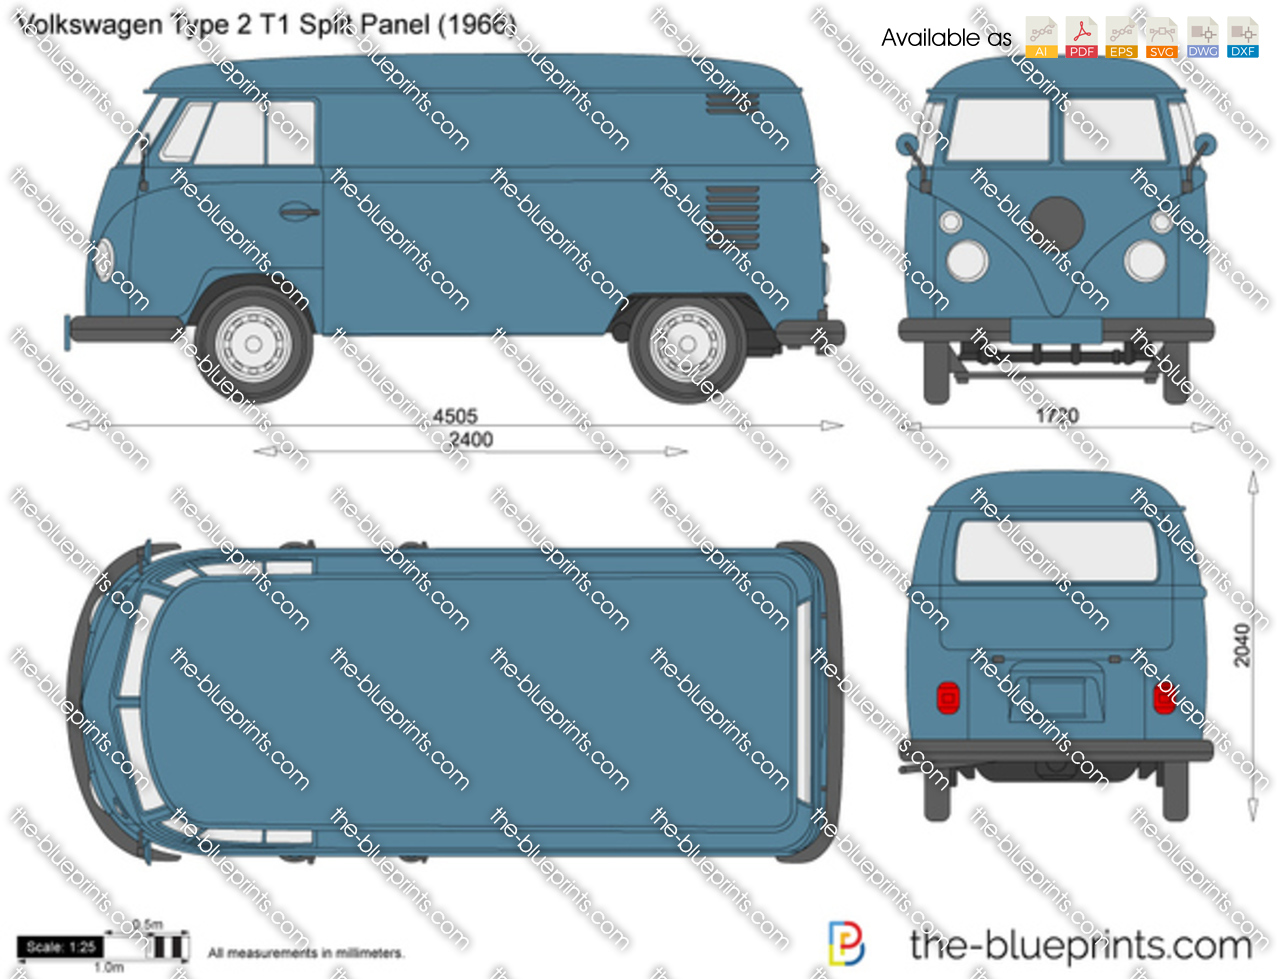 Volkswagen Type 2 T1 Split Panel 1957